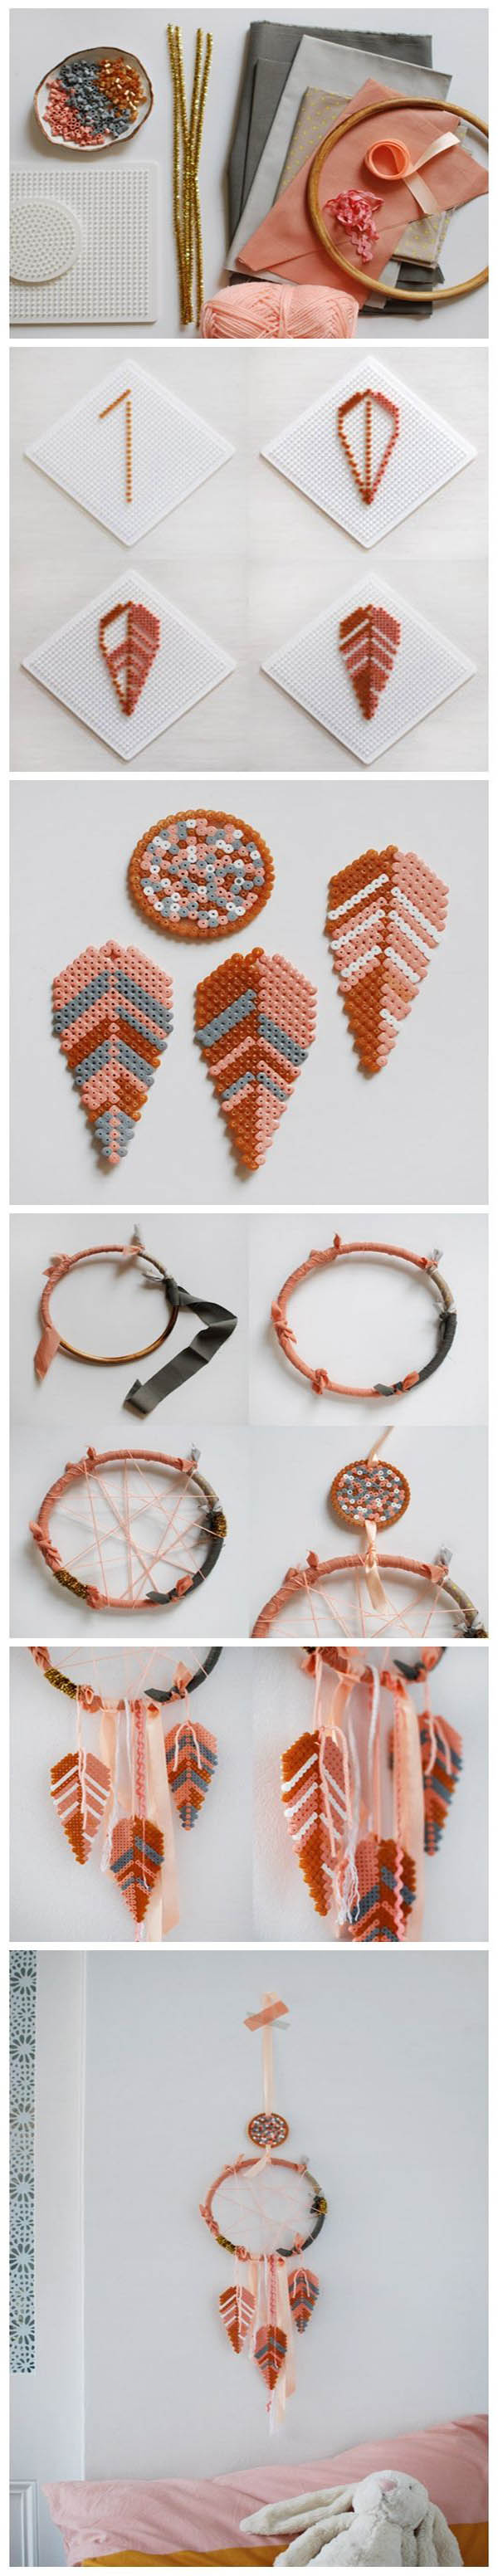 Bead Feather Dreamcatcher